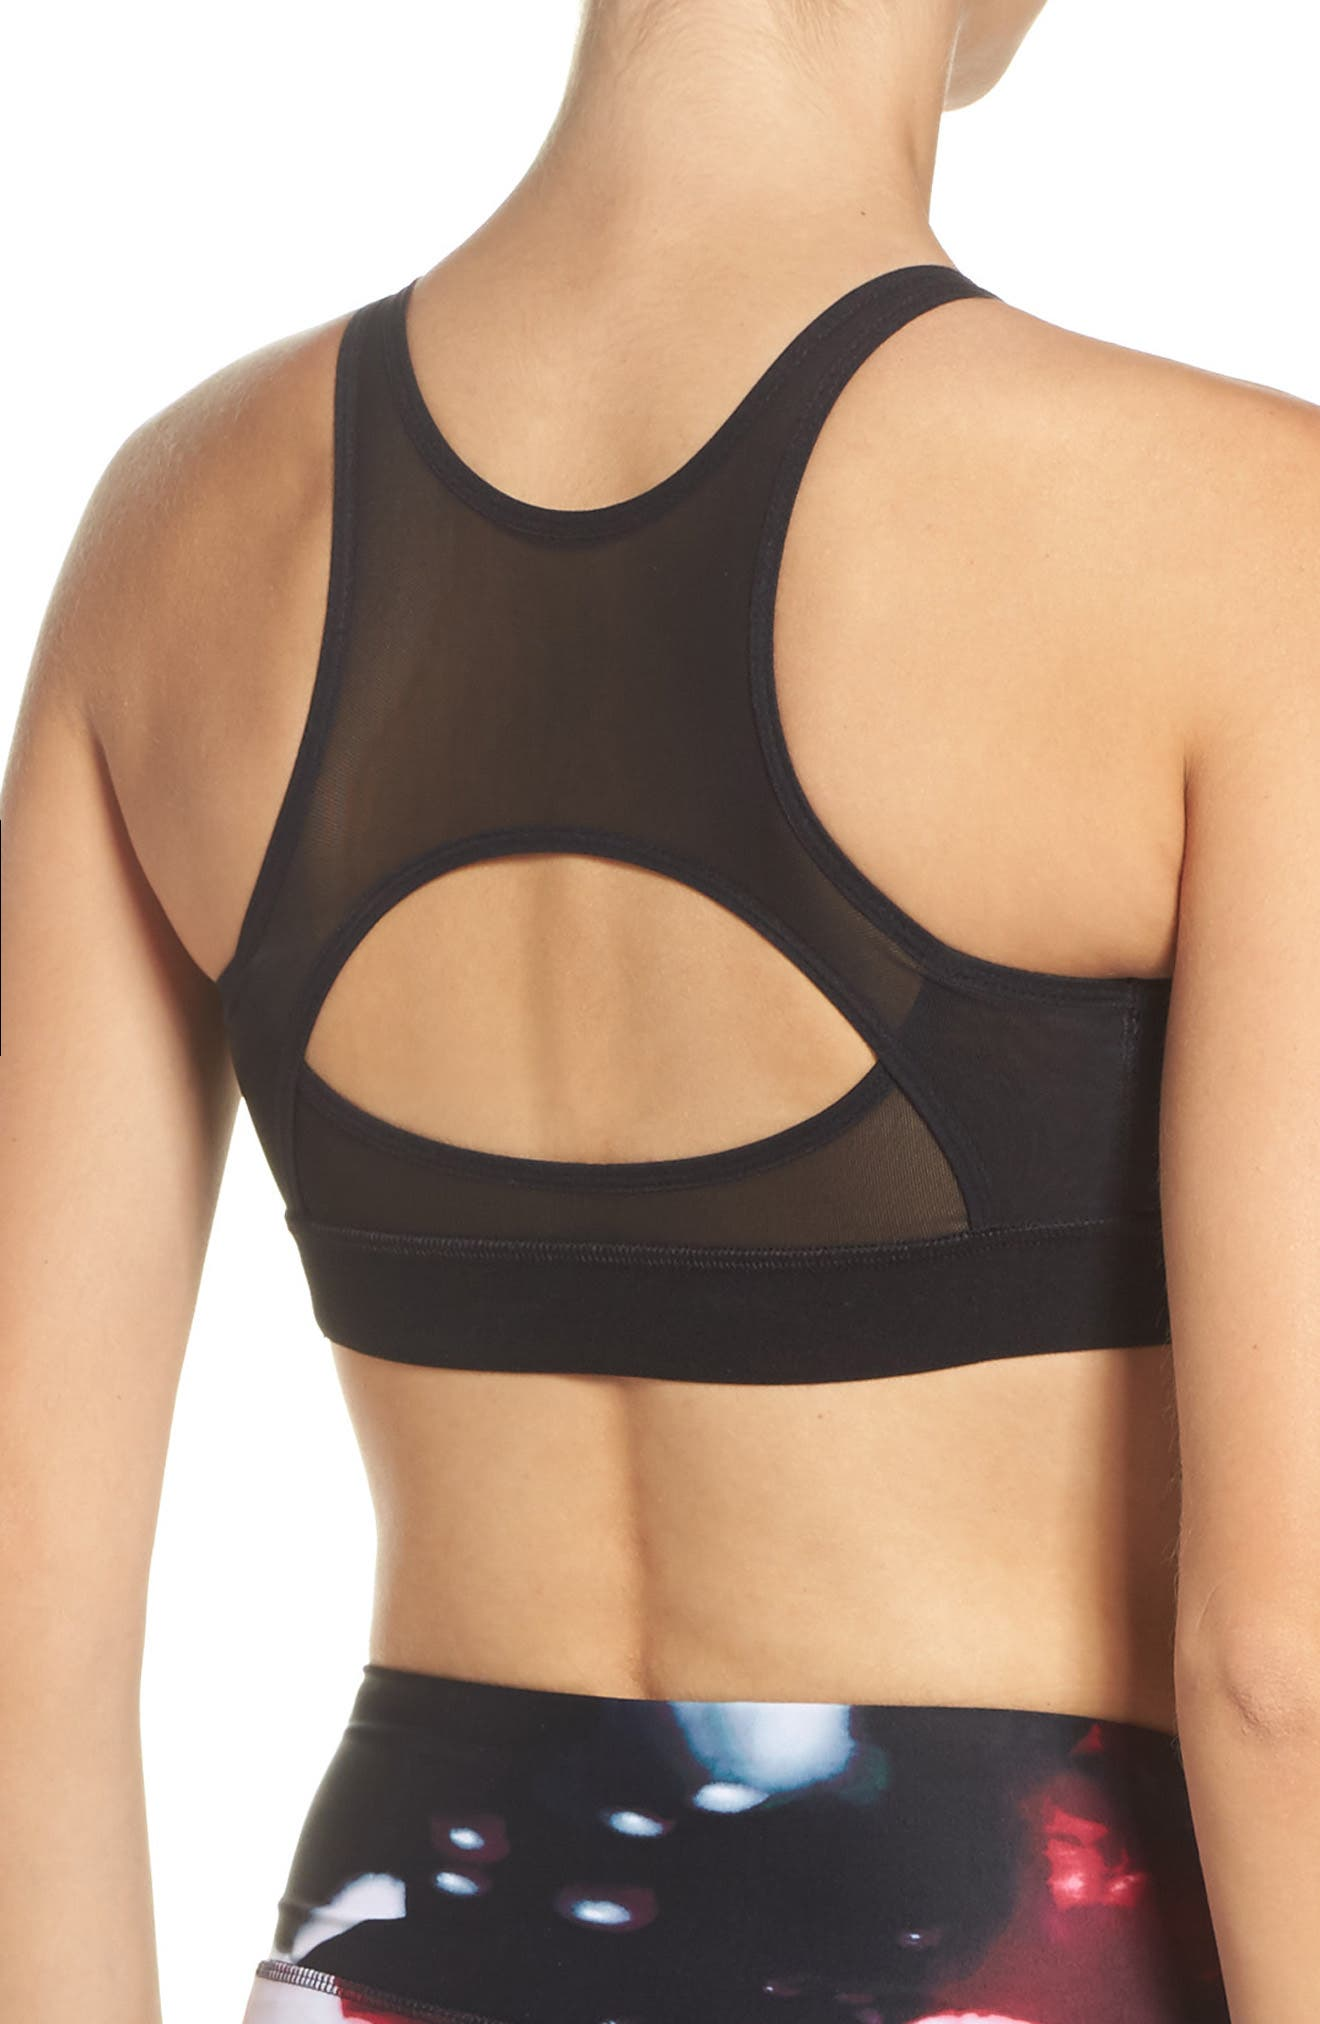 Alternate Image 2  - HPE Impact 2.0 Mesh High Impact Compression Sports Bra